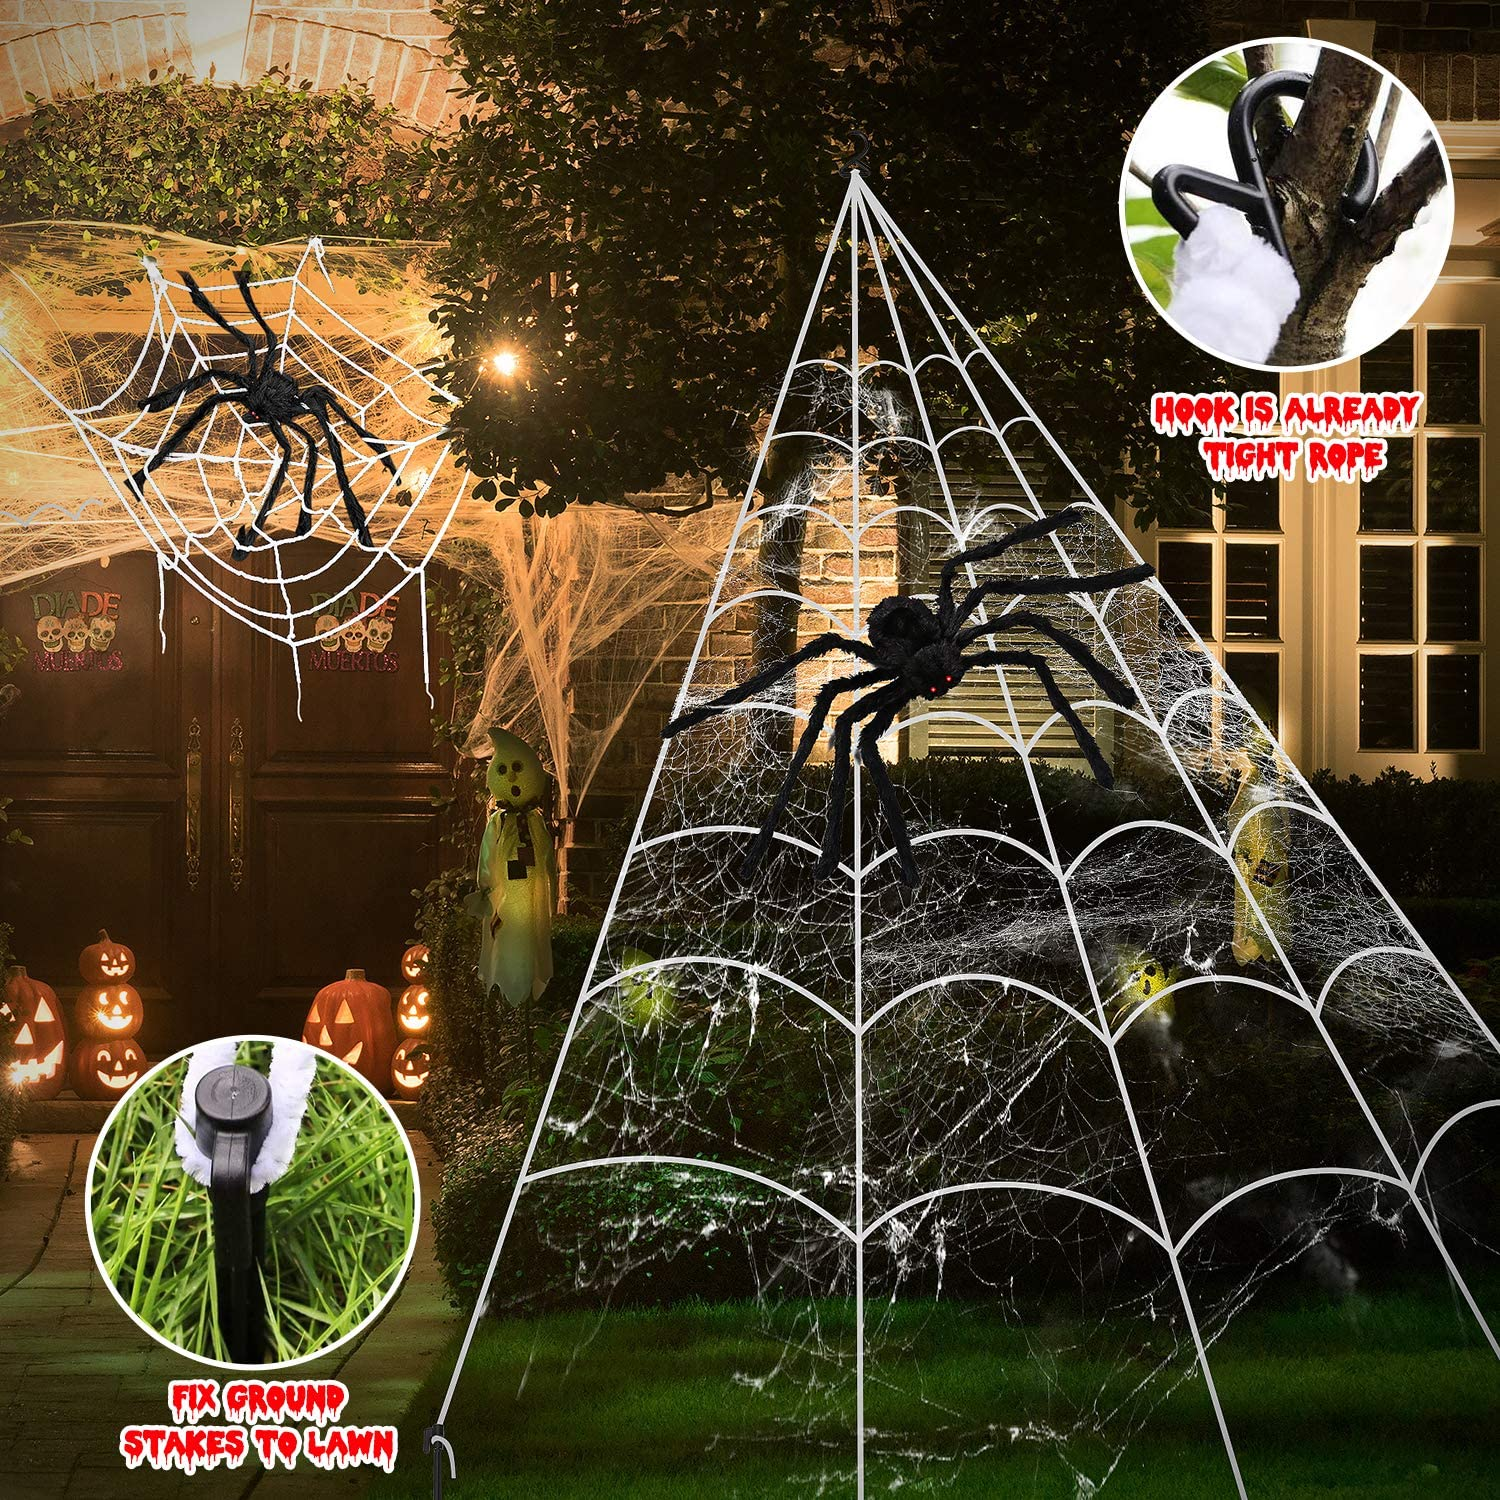 Halloween Decorations, 2Pcs 50'' Giant Spider + 200'' Triangular Spider Web and 100'' Round Spider Web, with Hook, Stretch Web and Ground Stakes for Indoor Outdoor Halloween Decor Haunted House Props: Garden & Outdoor